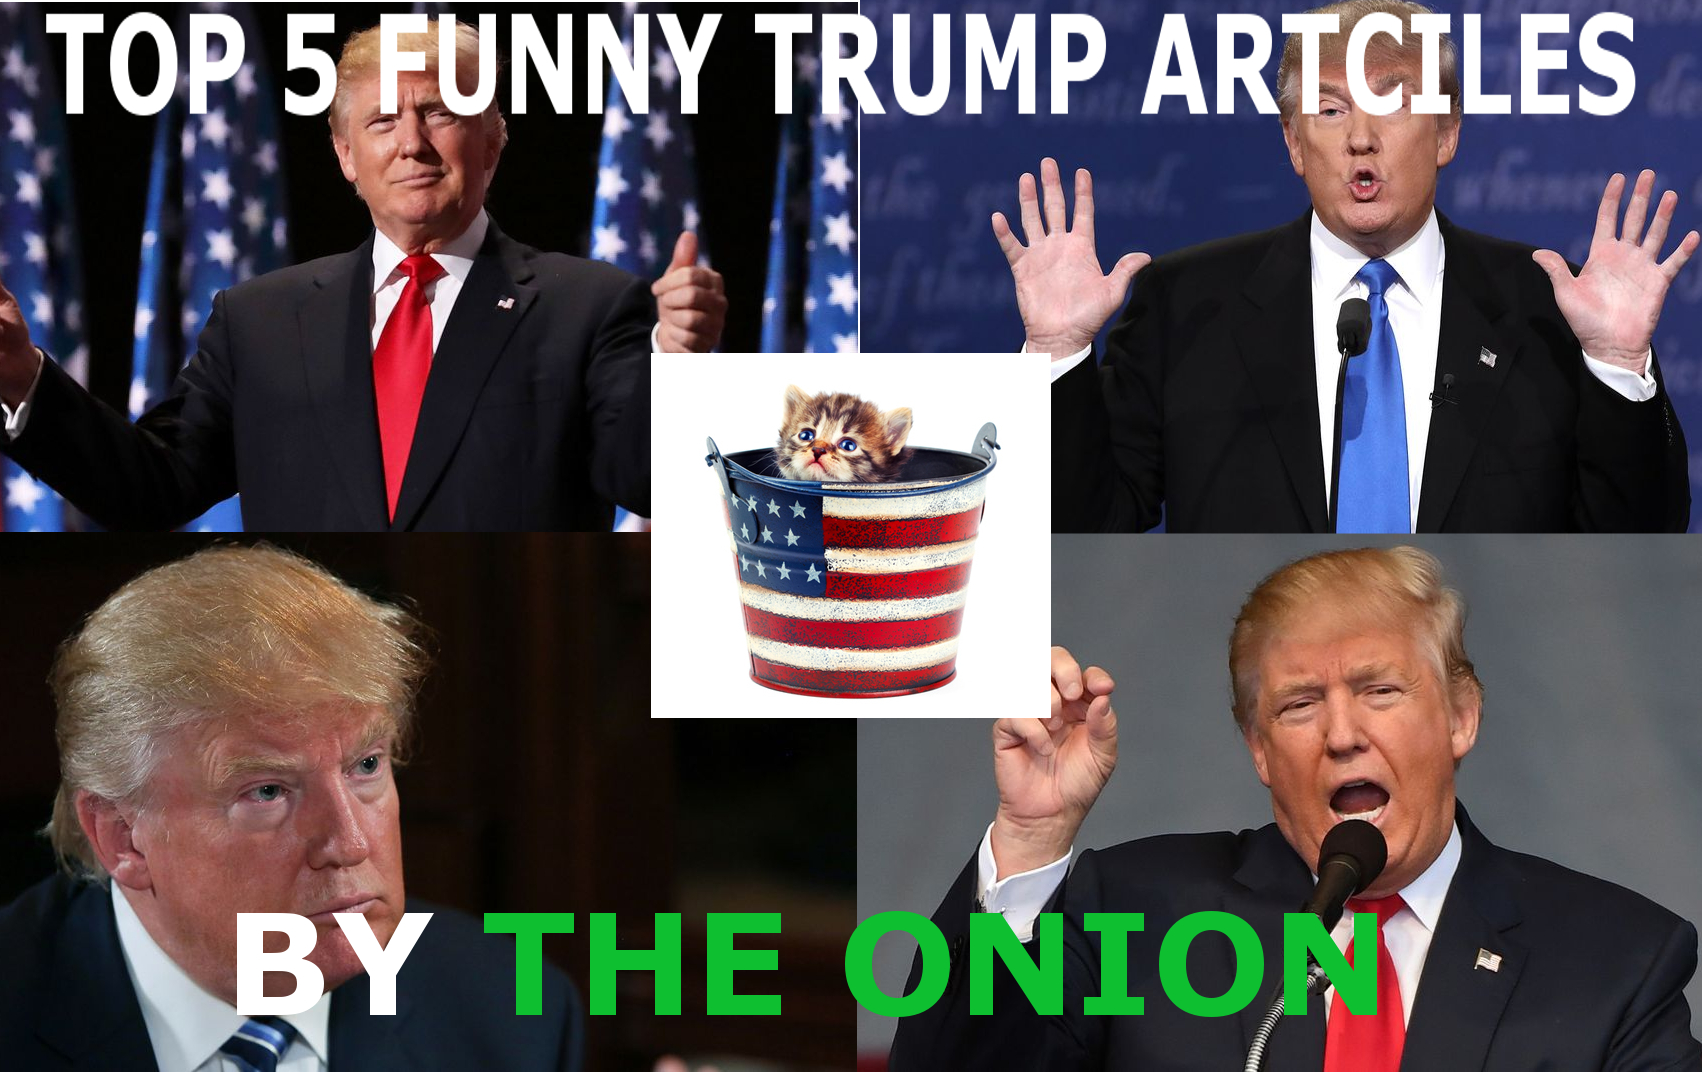 Top 5 Funny Donald Trump Articles By The Onion